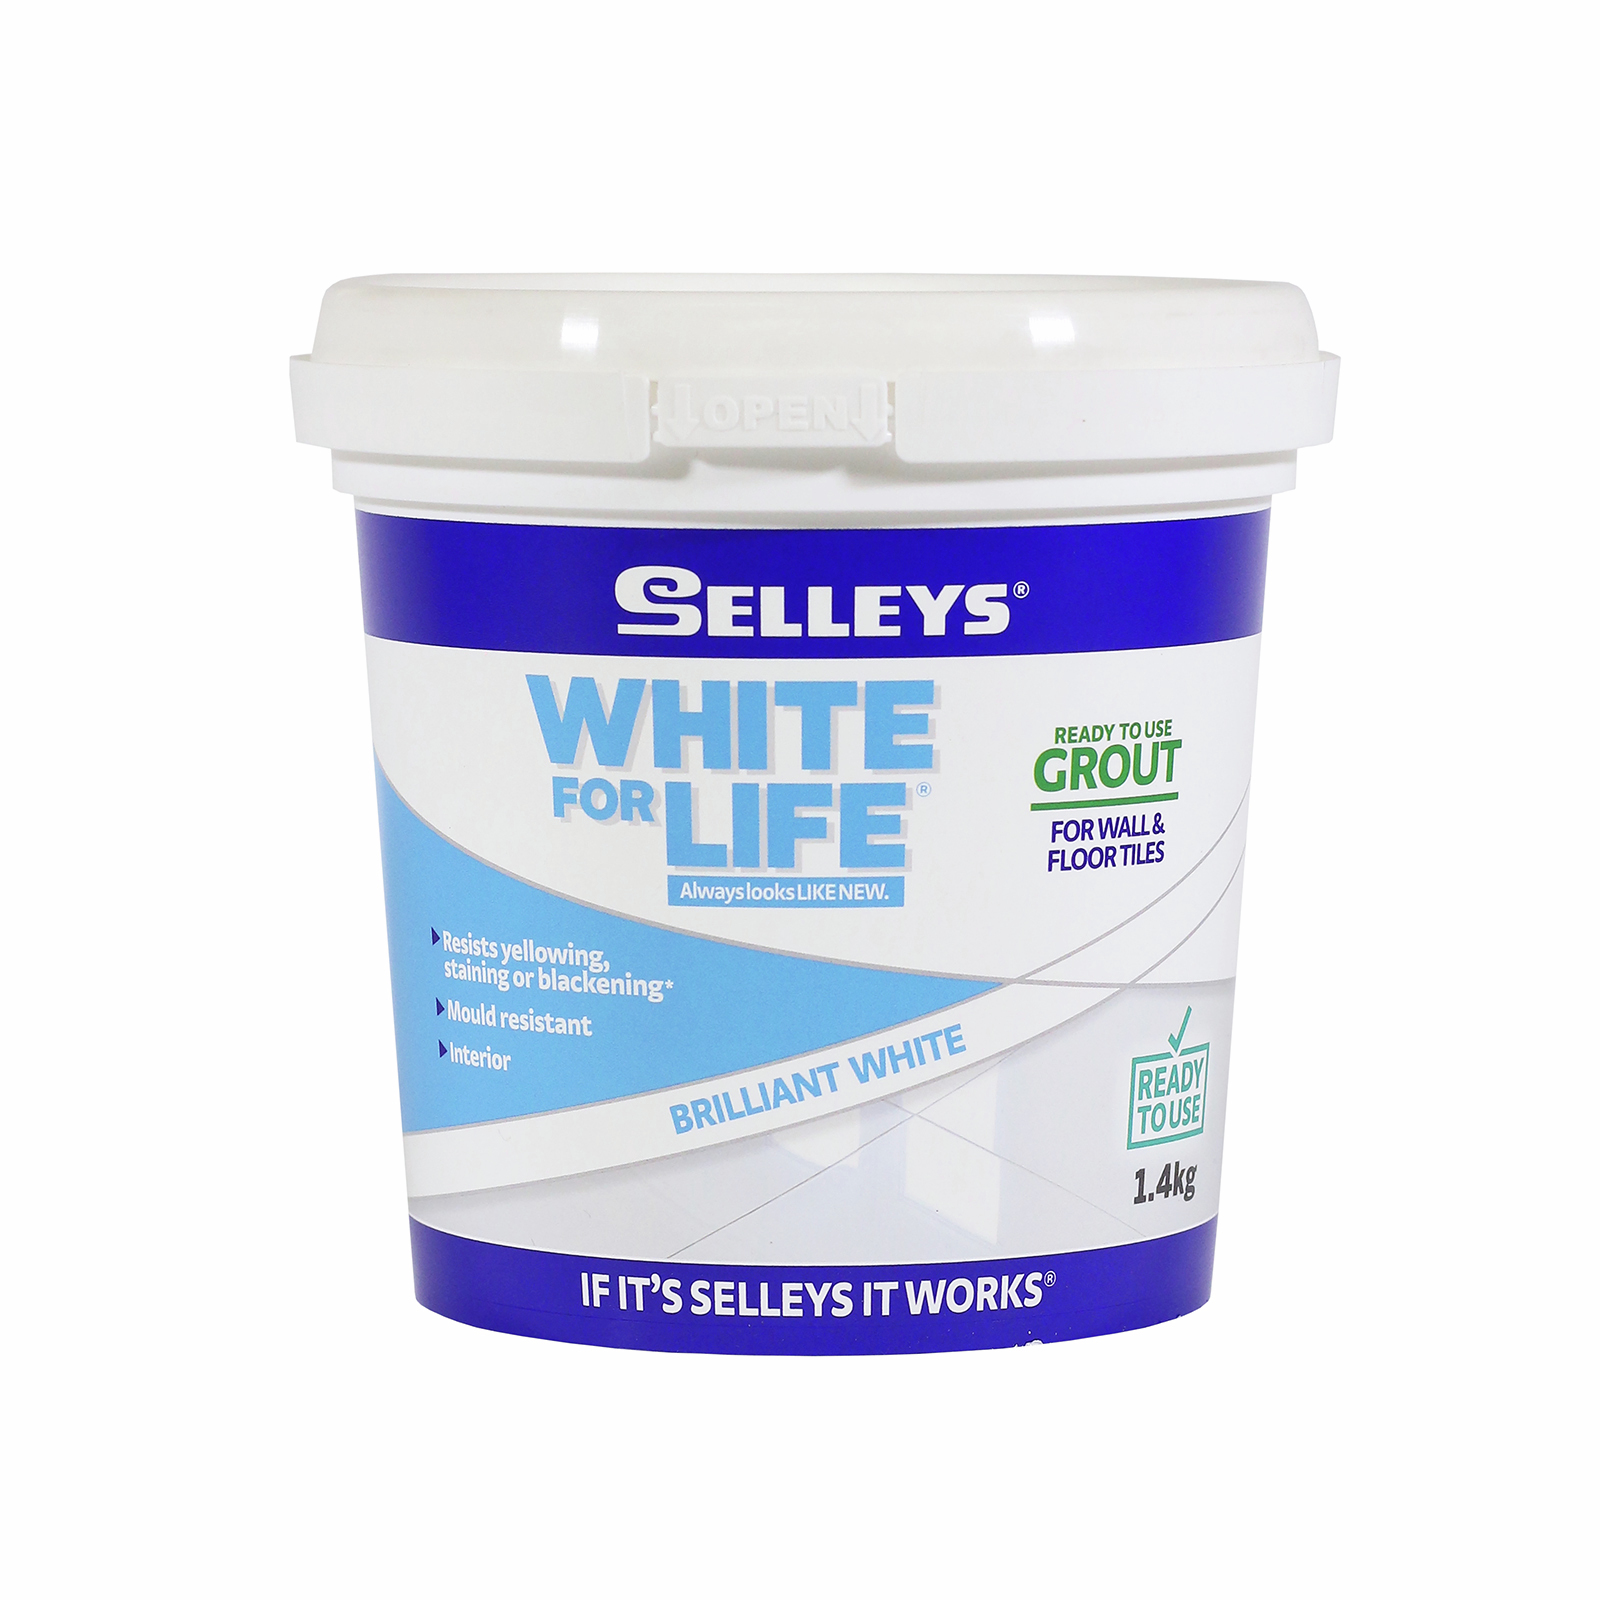 Selleys 1.4kg Brilliant White For Life Grout Ready To Use